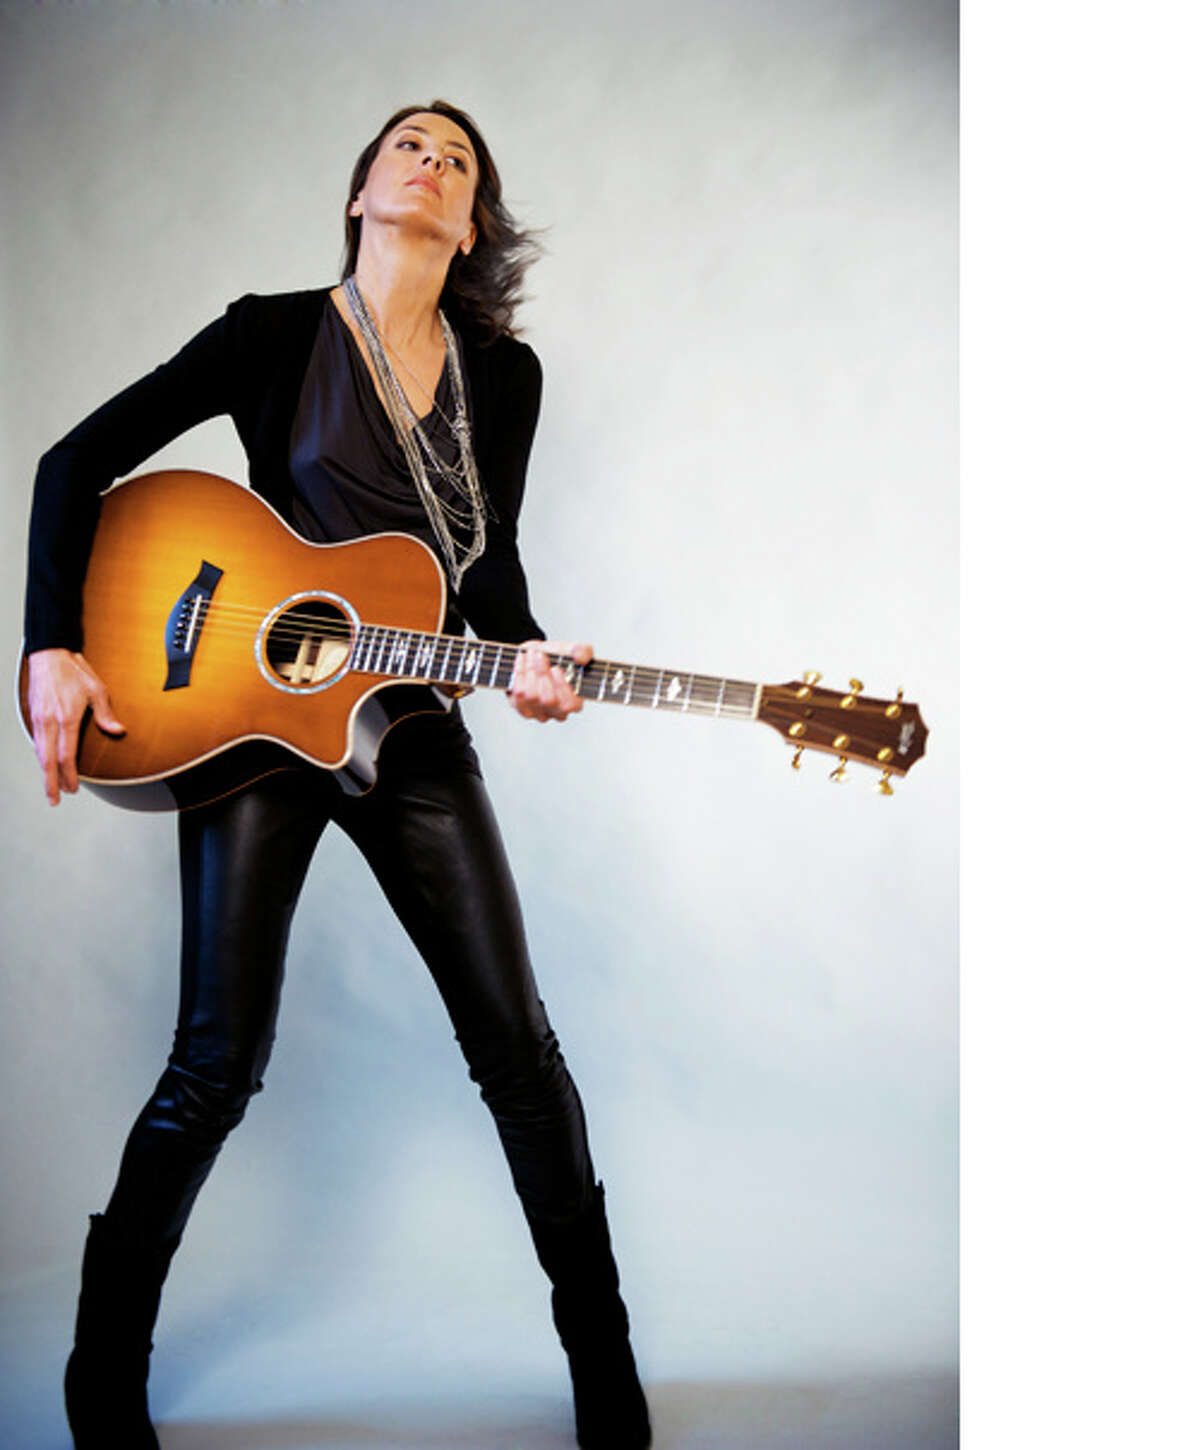 Contributed photo The musician Katrin is performing at the Buttonwood Tree Oct. 24.